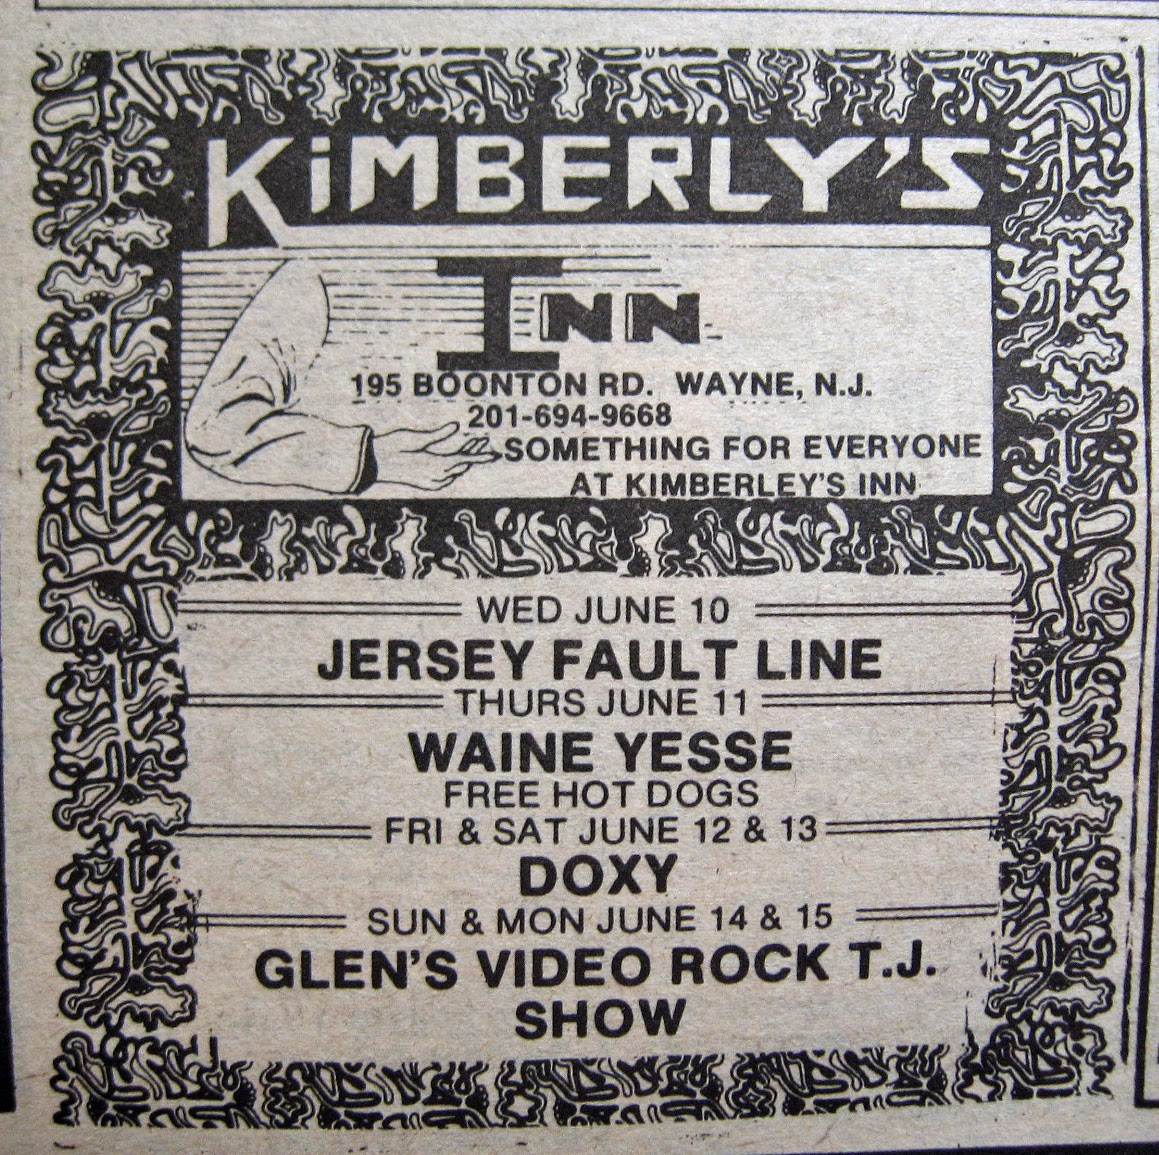 Kimberly's Inn band line up 1981